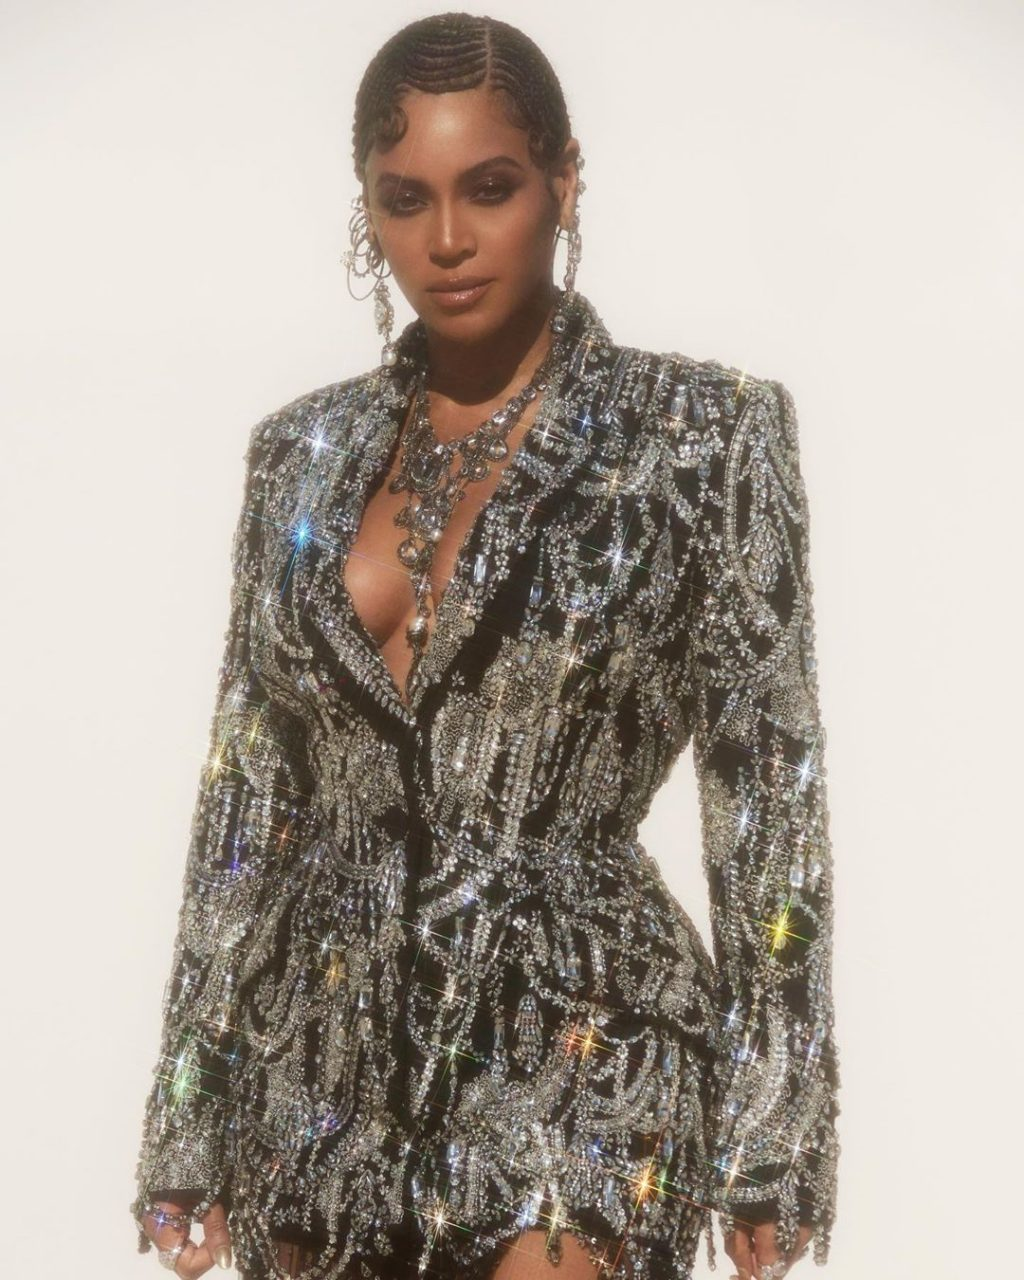 The Best-Dressed Celebrities of the Week of July 15, 2019 – Vote Now